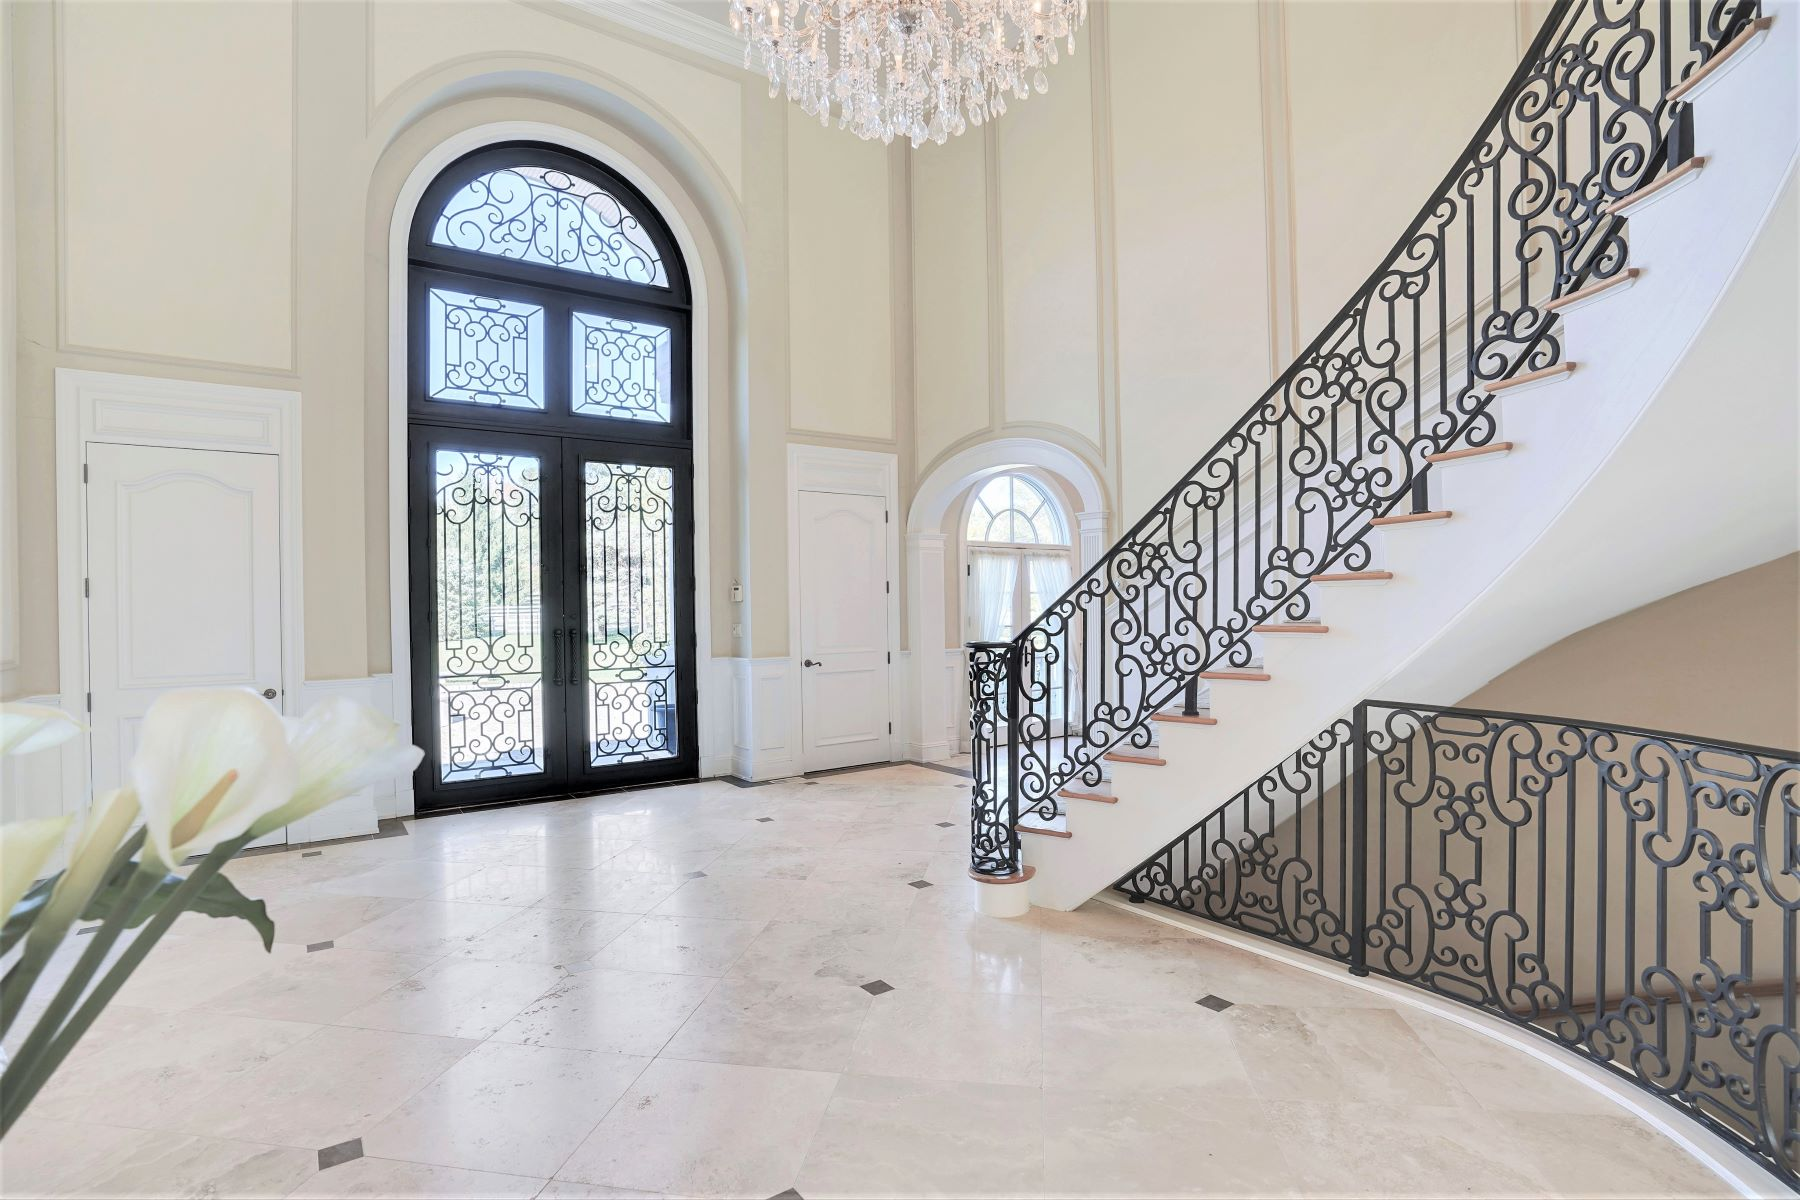 Additional photo for property listing at Scenic Grandeur 93 Lees Hill Road, Harding Township, New Jersey 07920 Hoa Kỳ